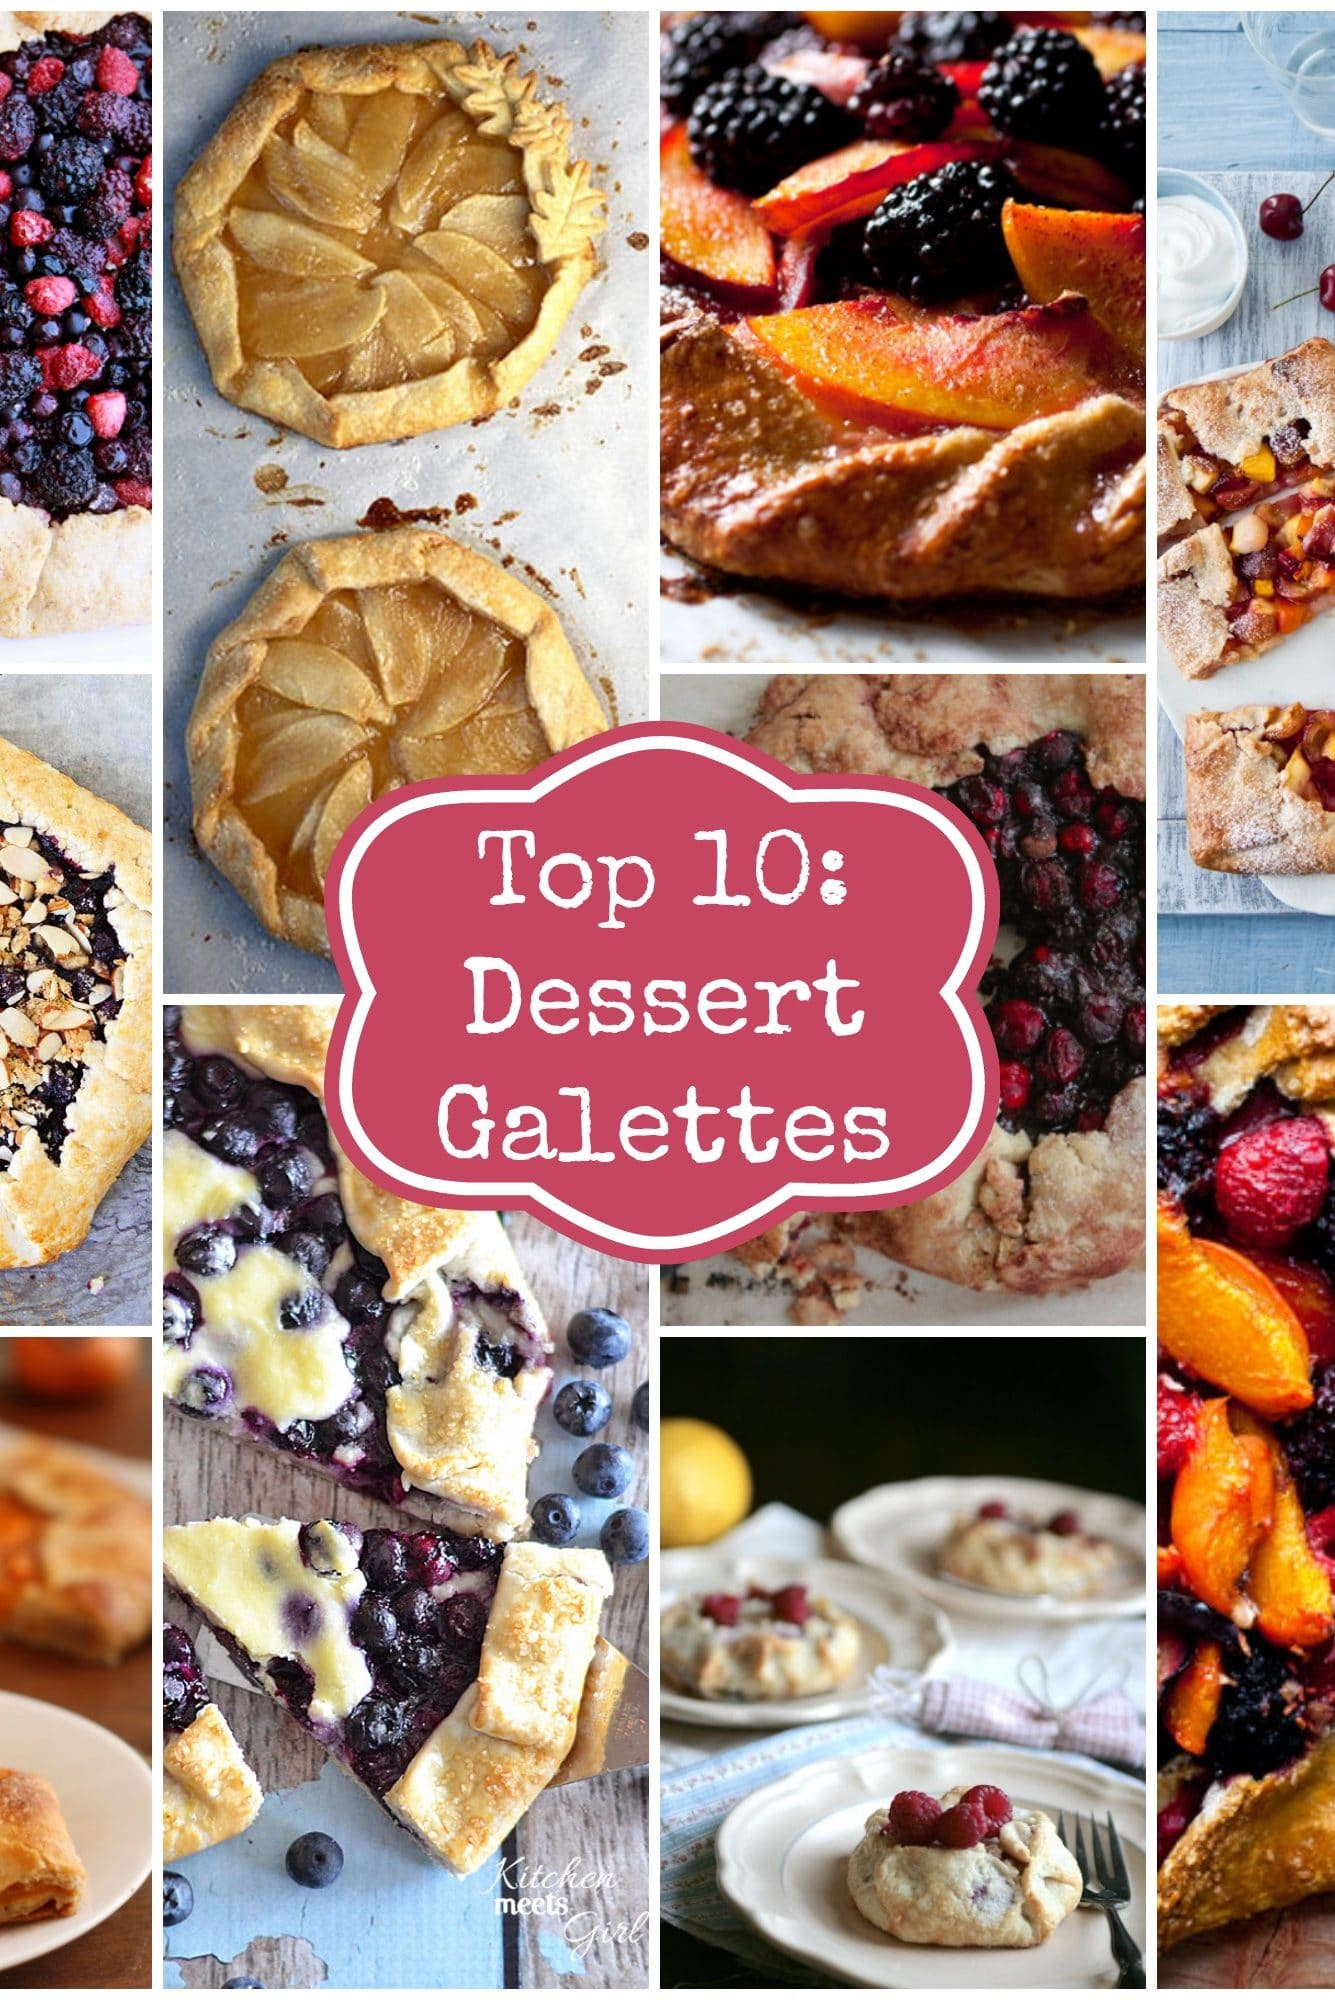 Top 10 Dessert Galettes : So many amazing delicious dessert galette recipes to choose from! Flakey crust, sweet filling, simple to make and so enjoyable to eat!